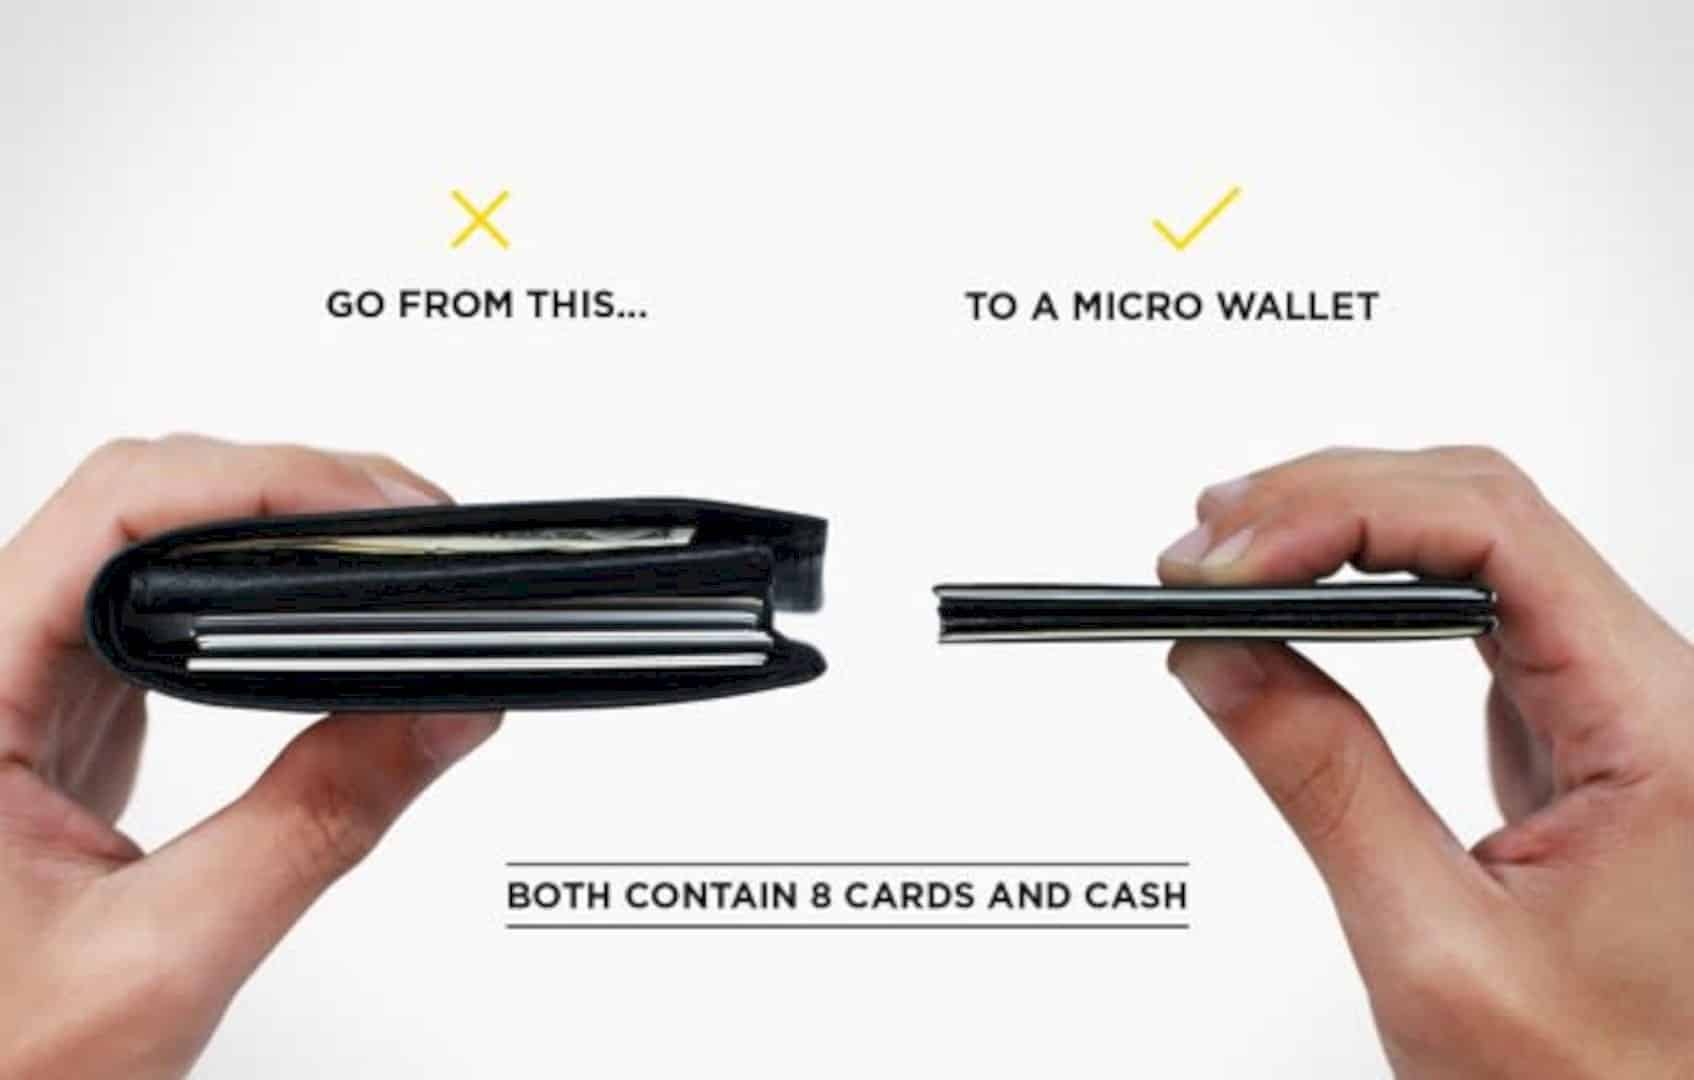 The Micro Wallet: Precise Down to The Micro-millimeter